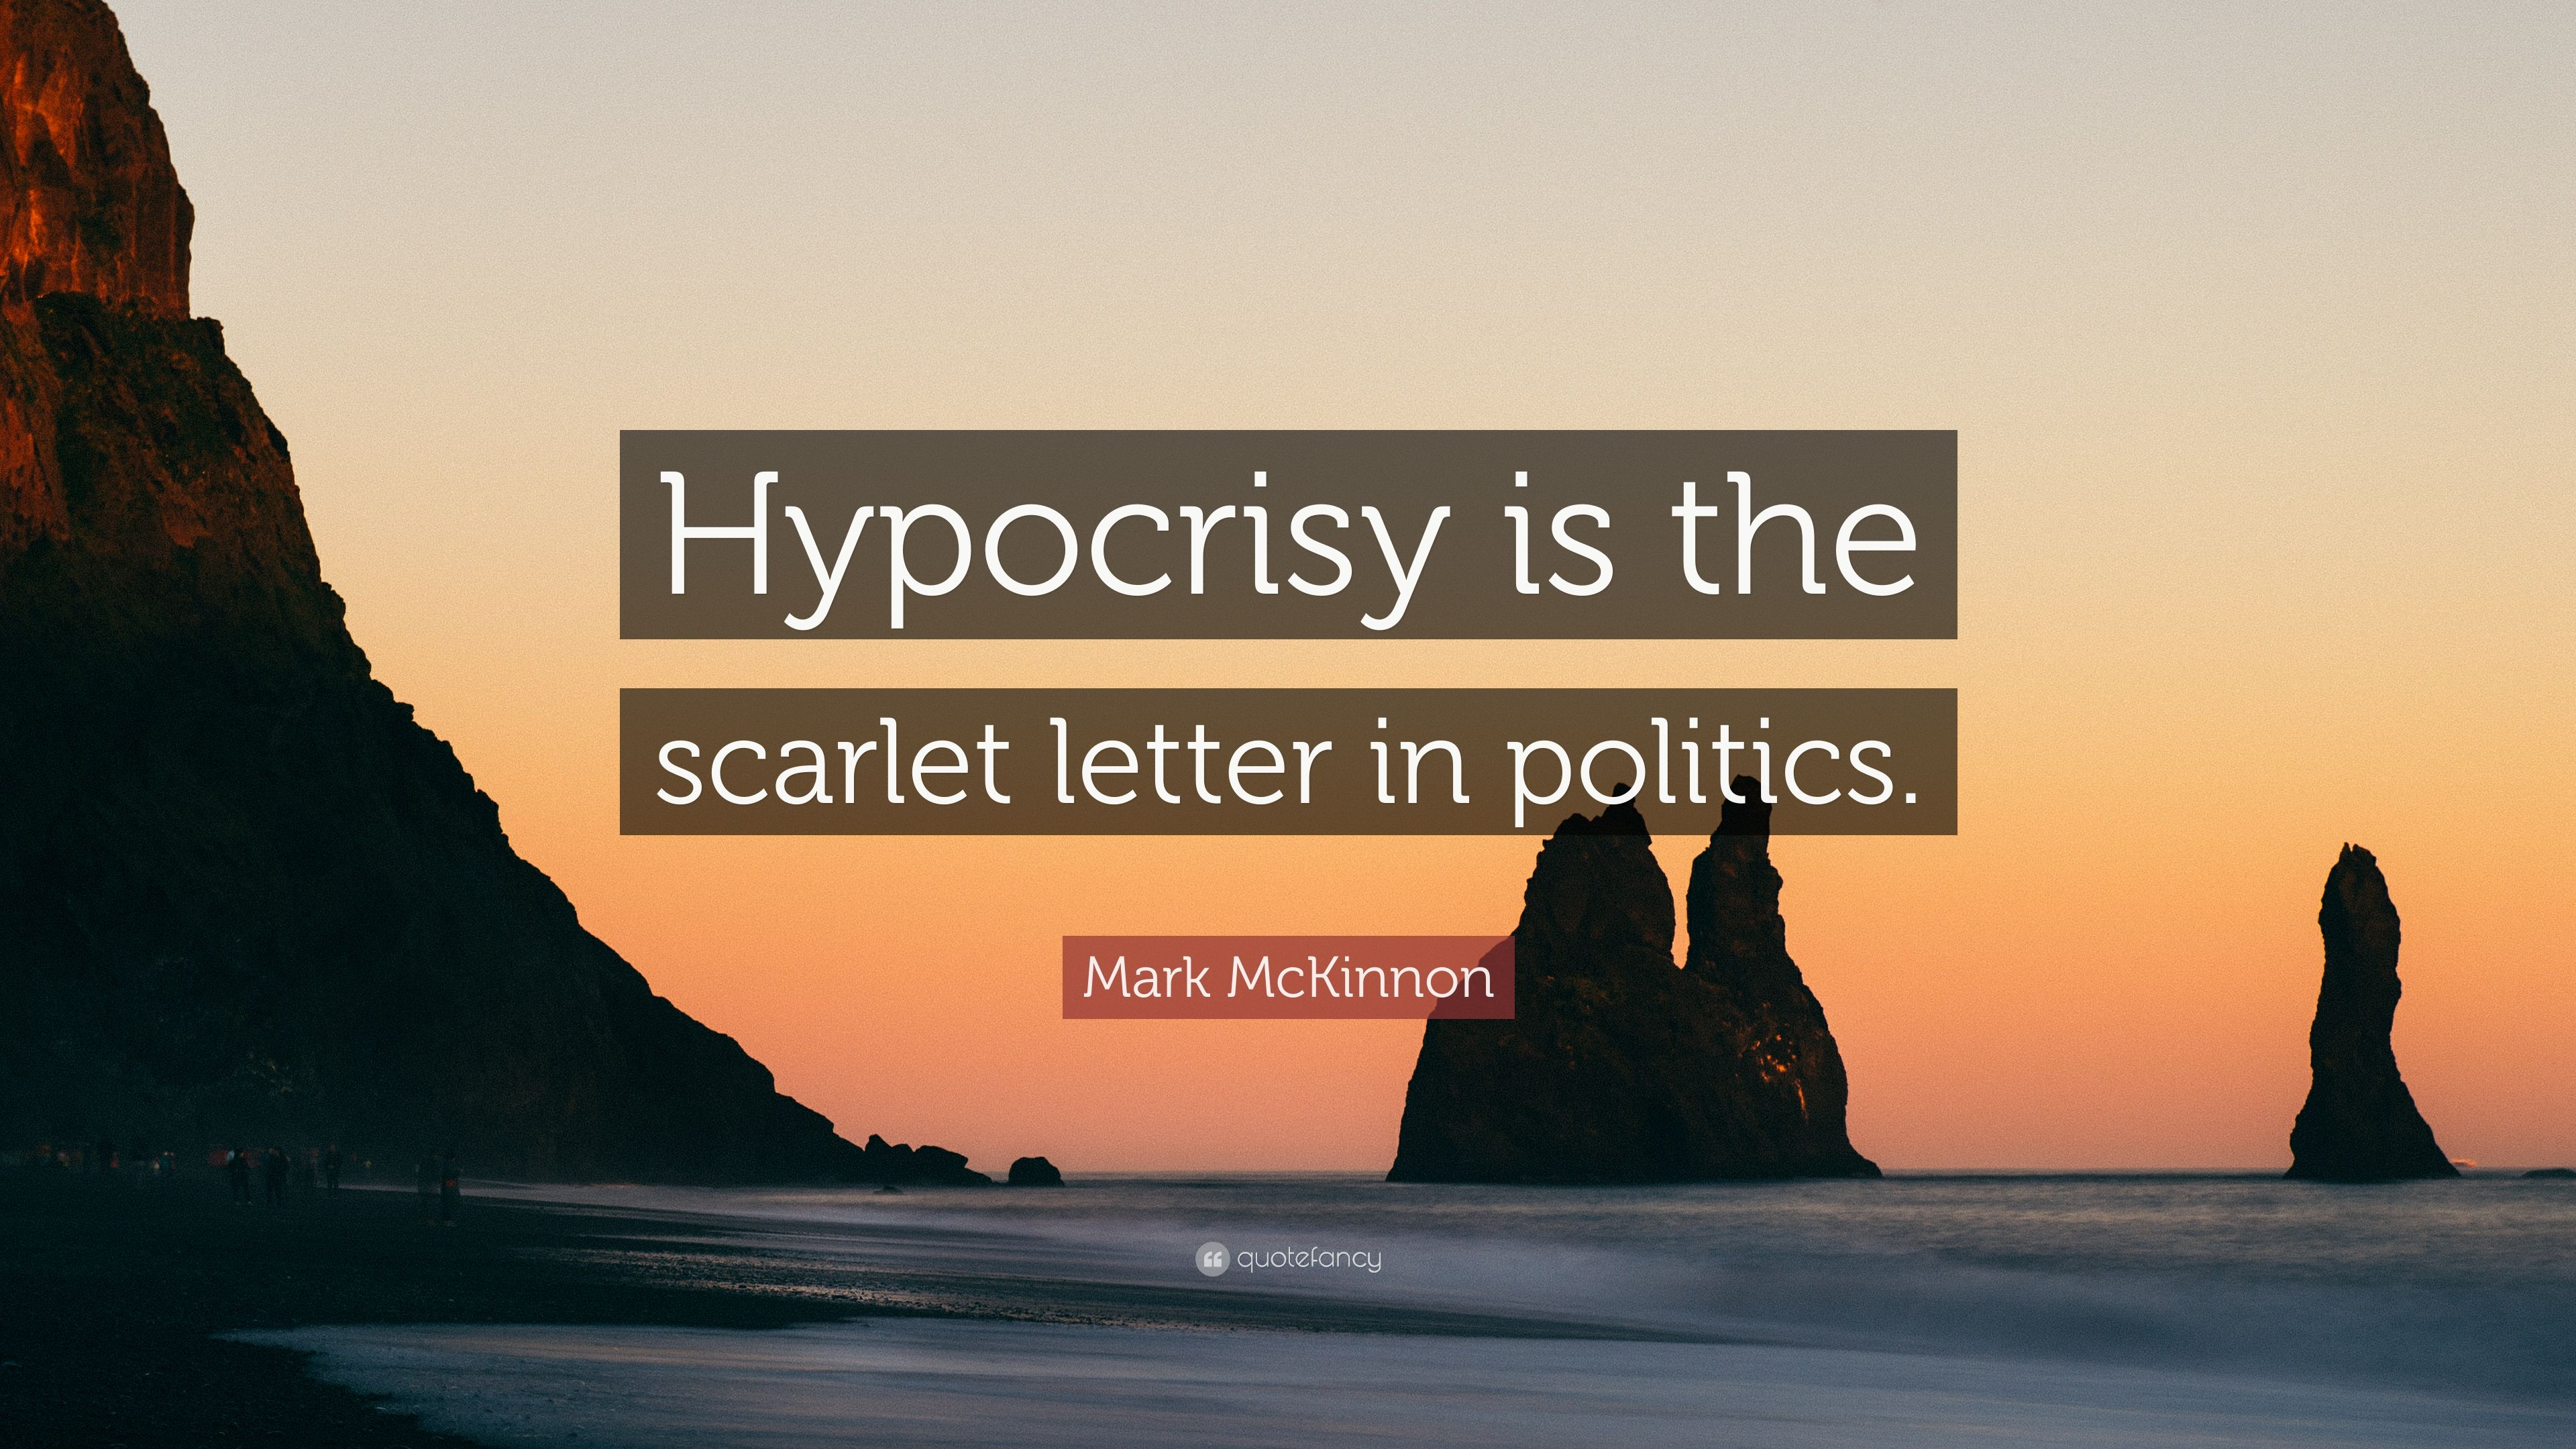 Essay on the scarlet letter hypocrisy